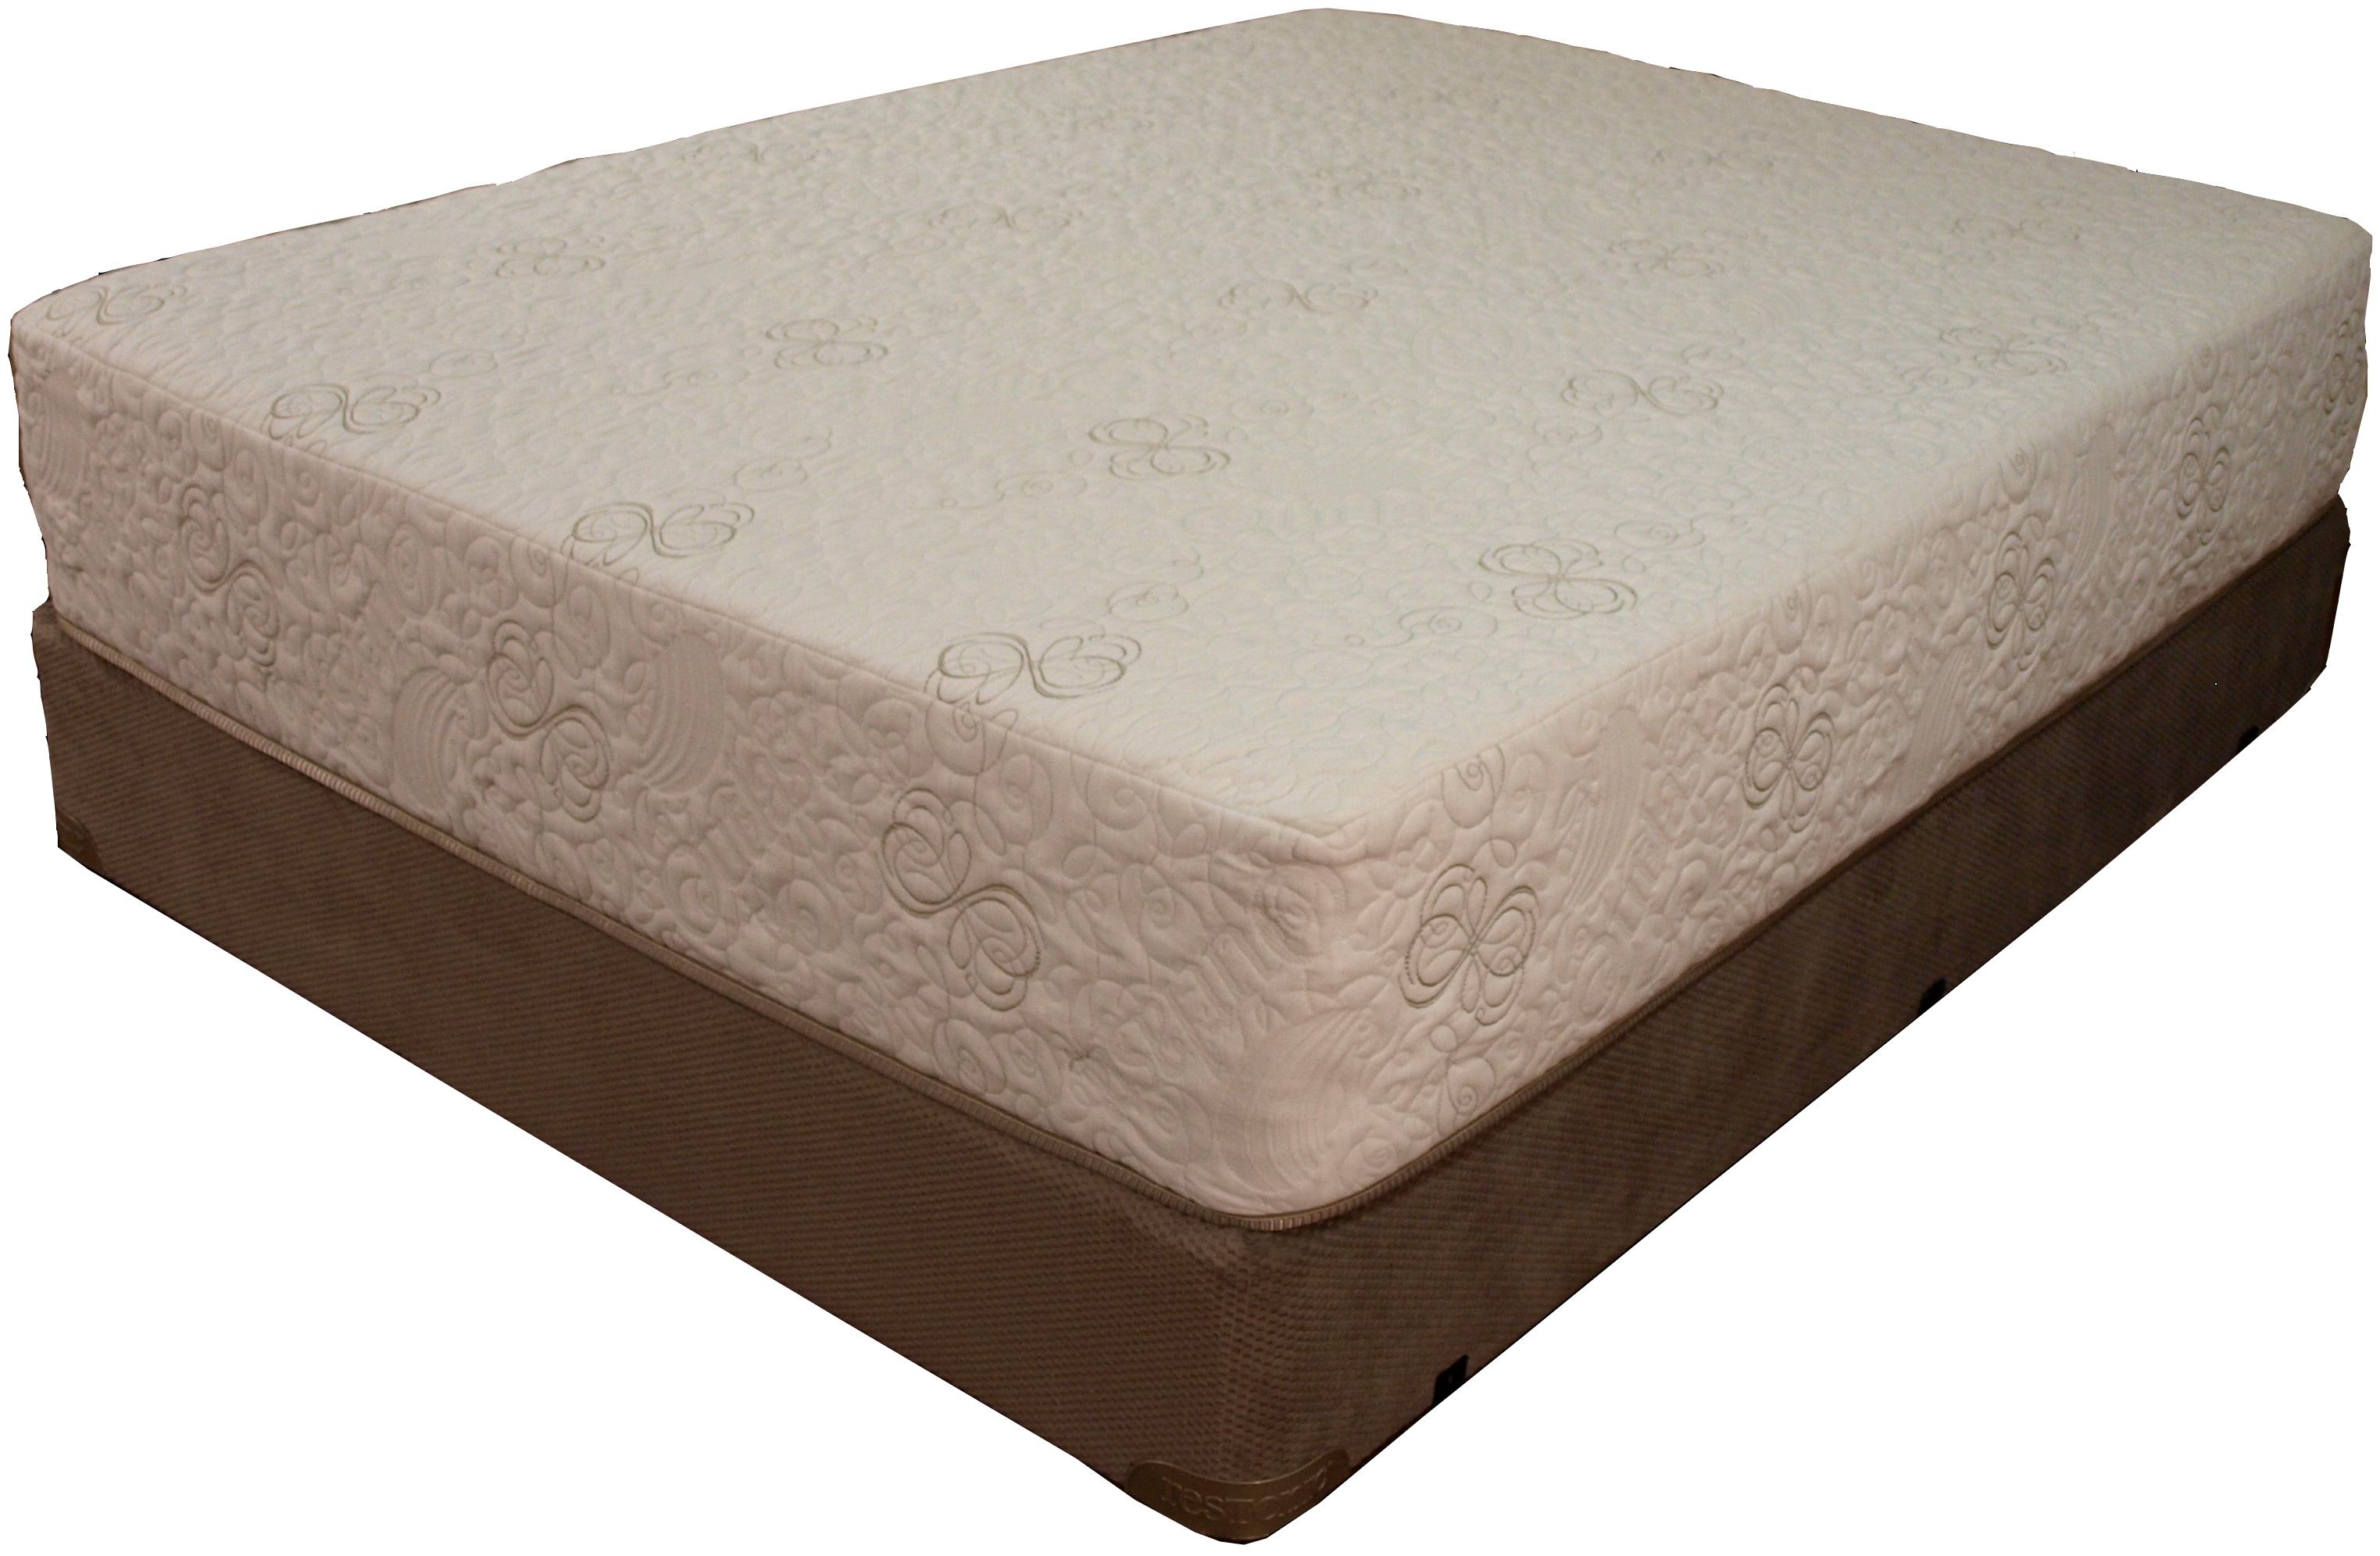 home product garden inch your mattress foam slumber comfort memory today choose overstock shipping solutions free queen